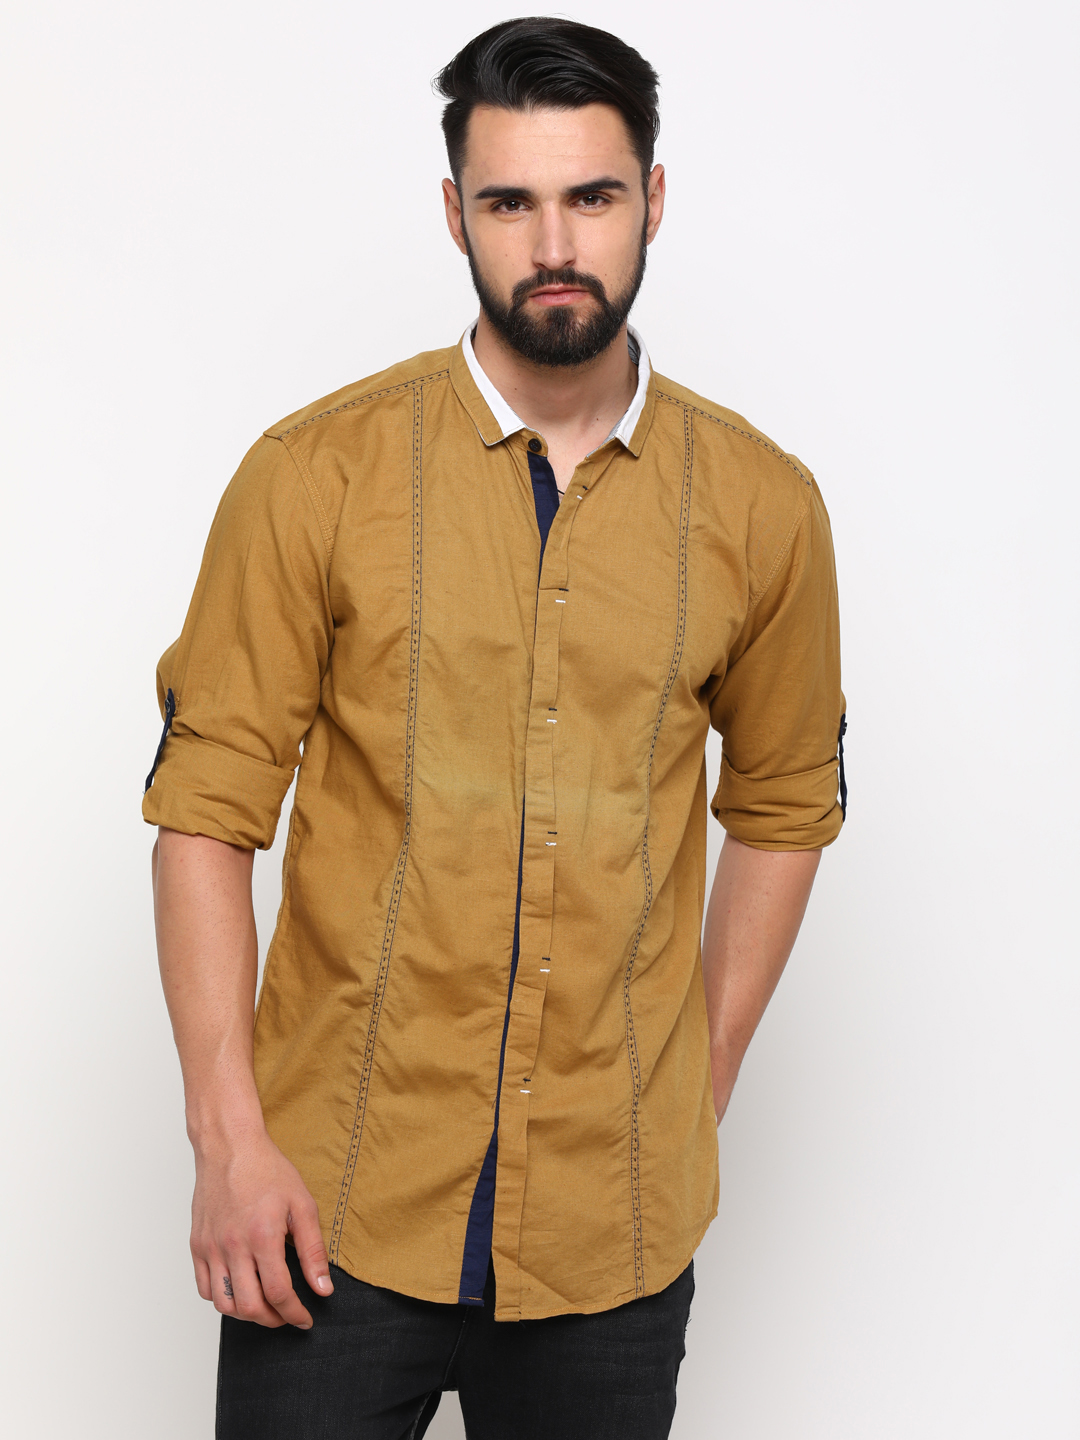 With | With Men's Khaki Linen Solid SlimFit Shirt